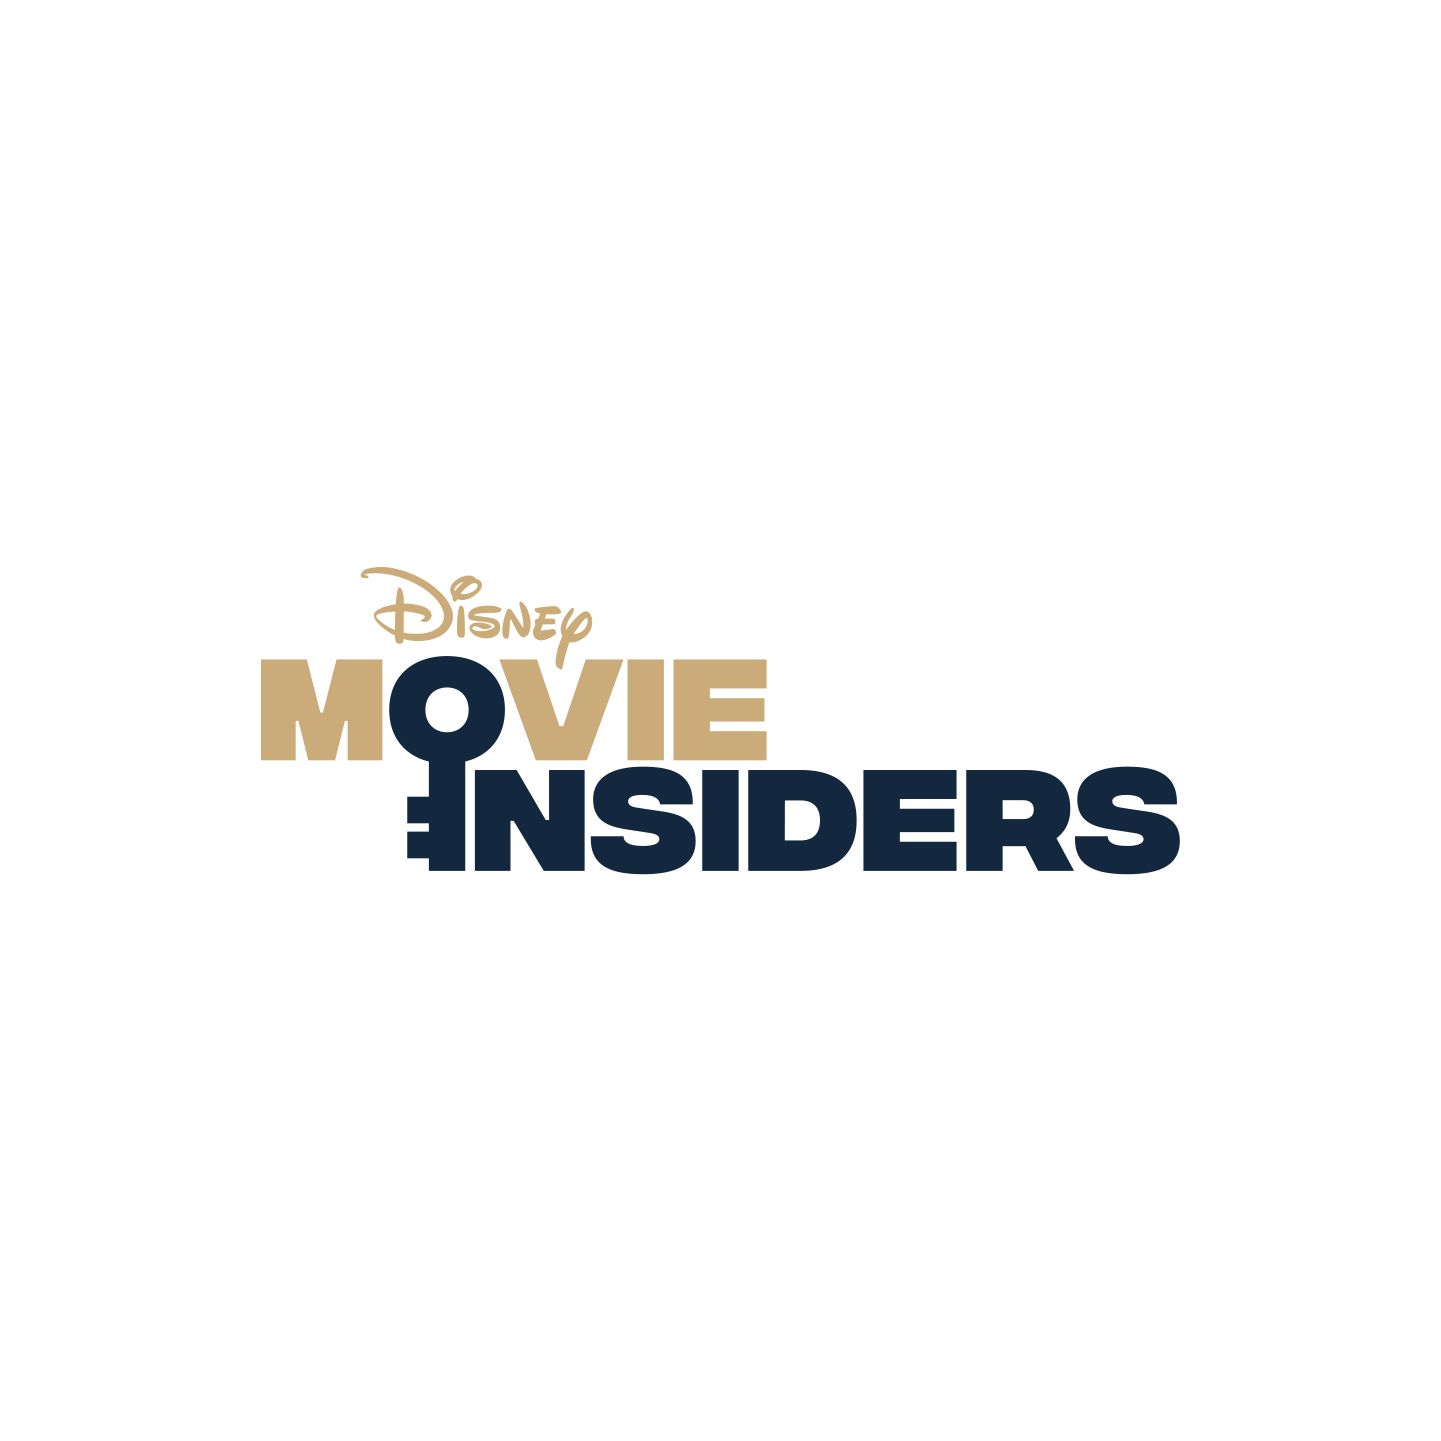 Disney Movie Insiders Program Changes Update- Click to Learn More